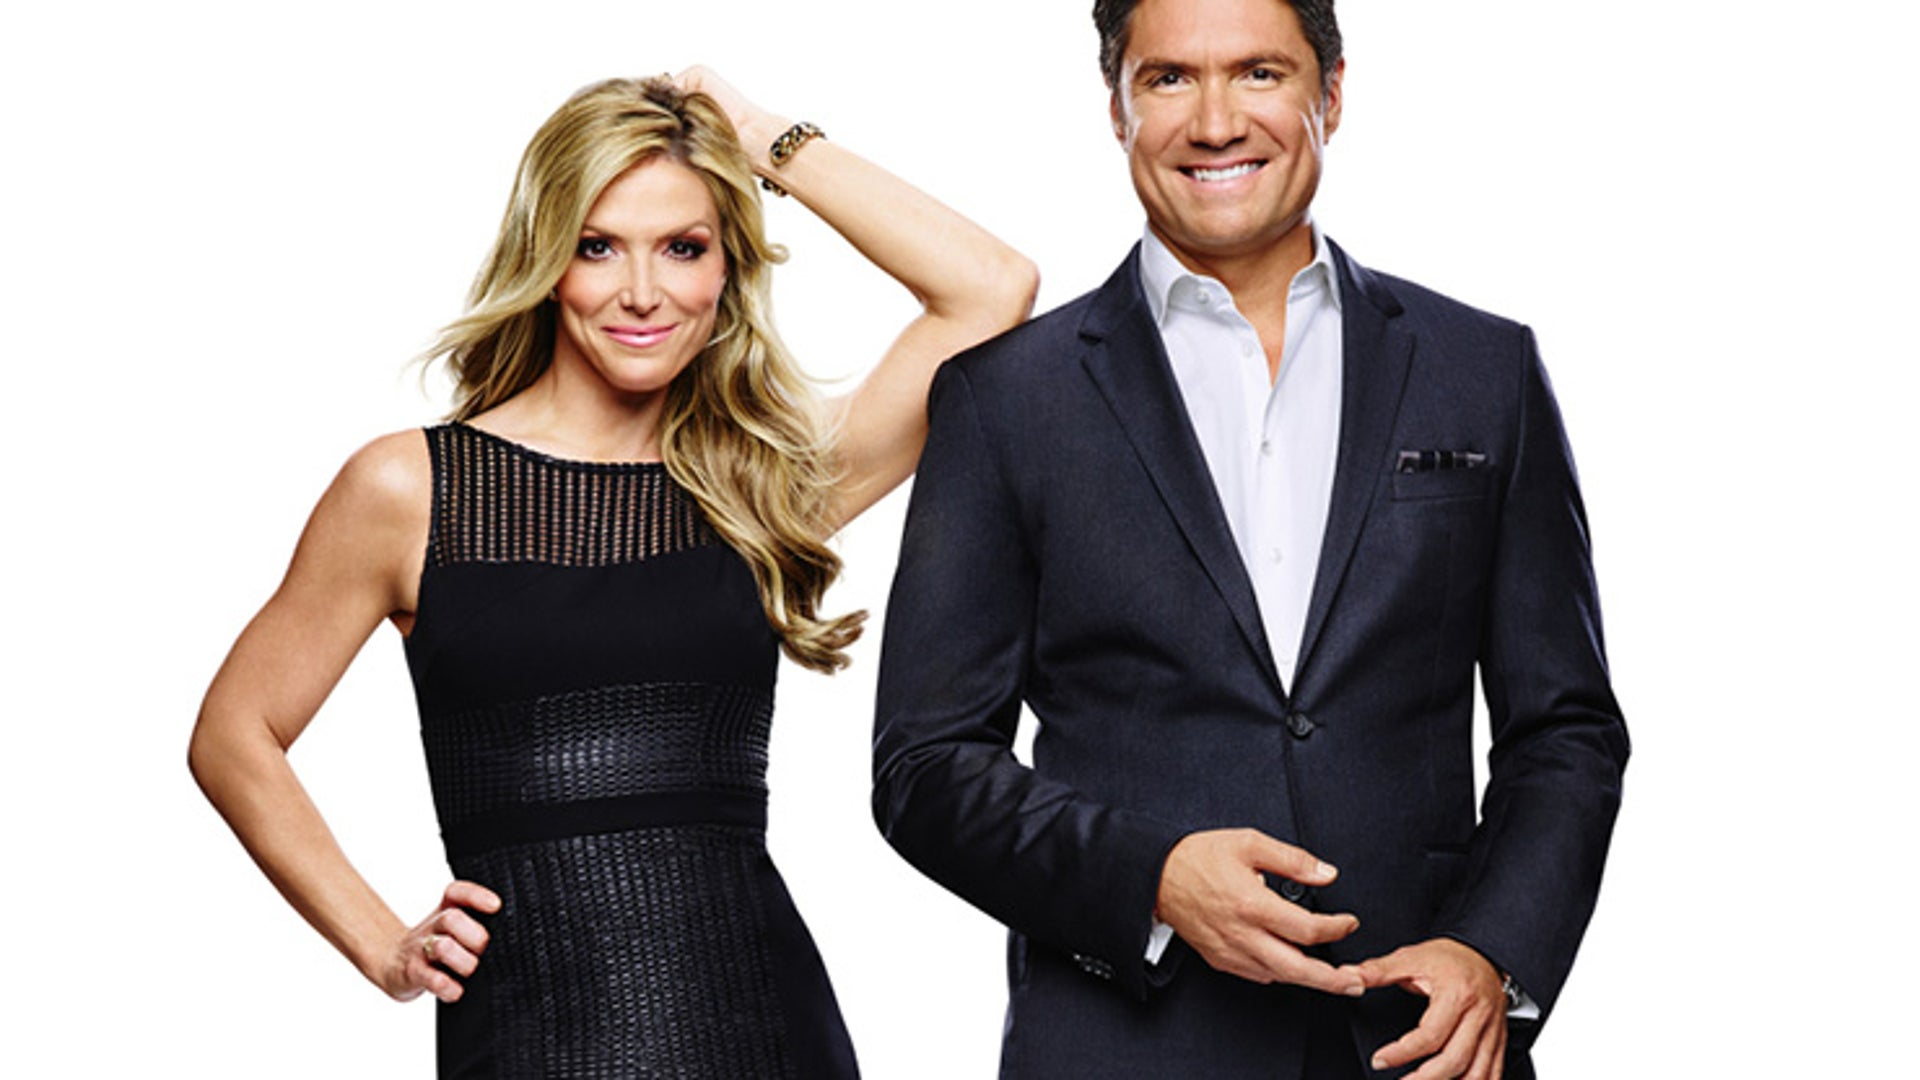 Debbie Matenopoulos and Louis Aguirre, The Insider